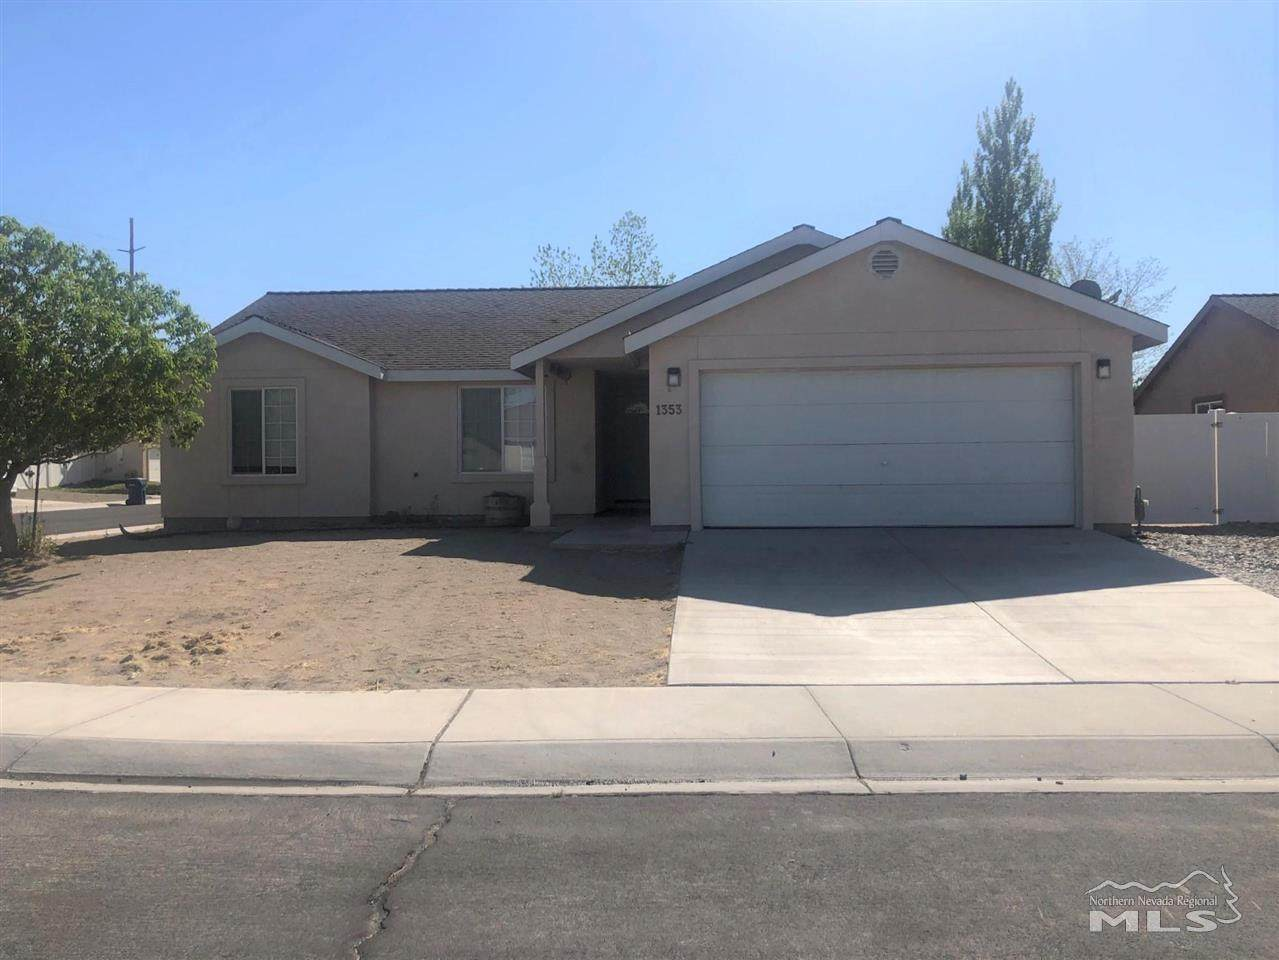 1353 White Bluffs Circle - Photo 1